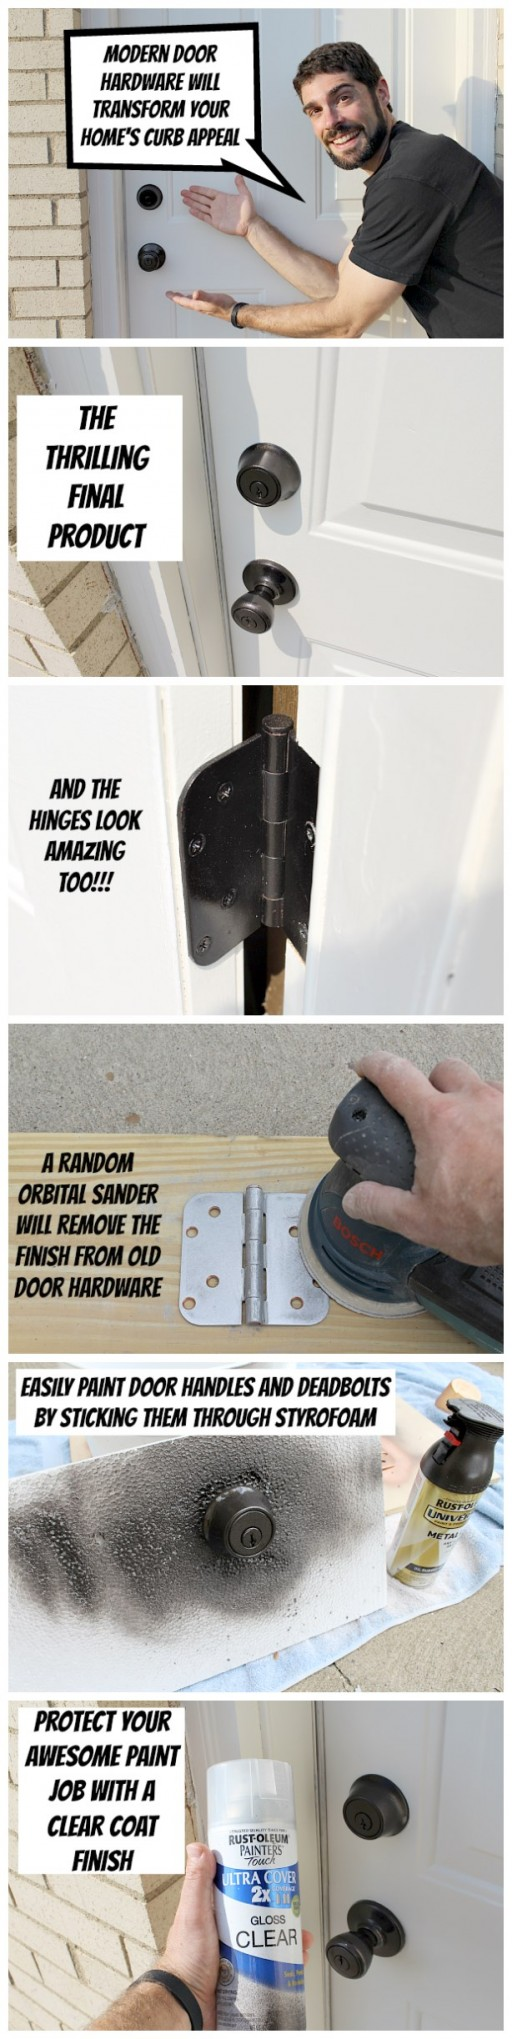 How to easily refinish door hardware step by step DIY tutorial instructions